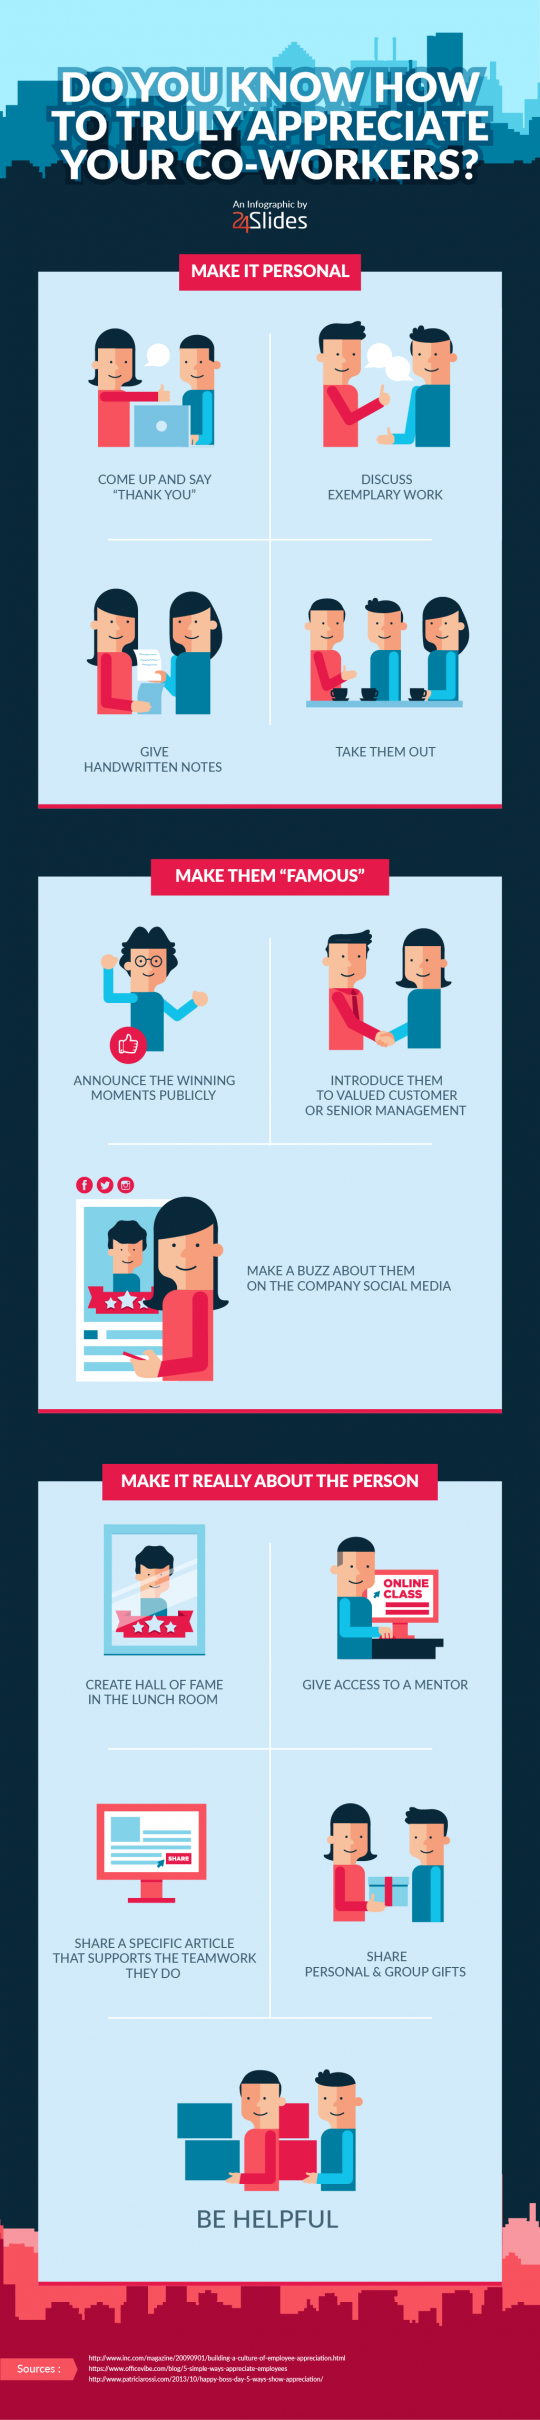 Do you know how to truly appreciate your co-workers?